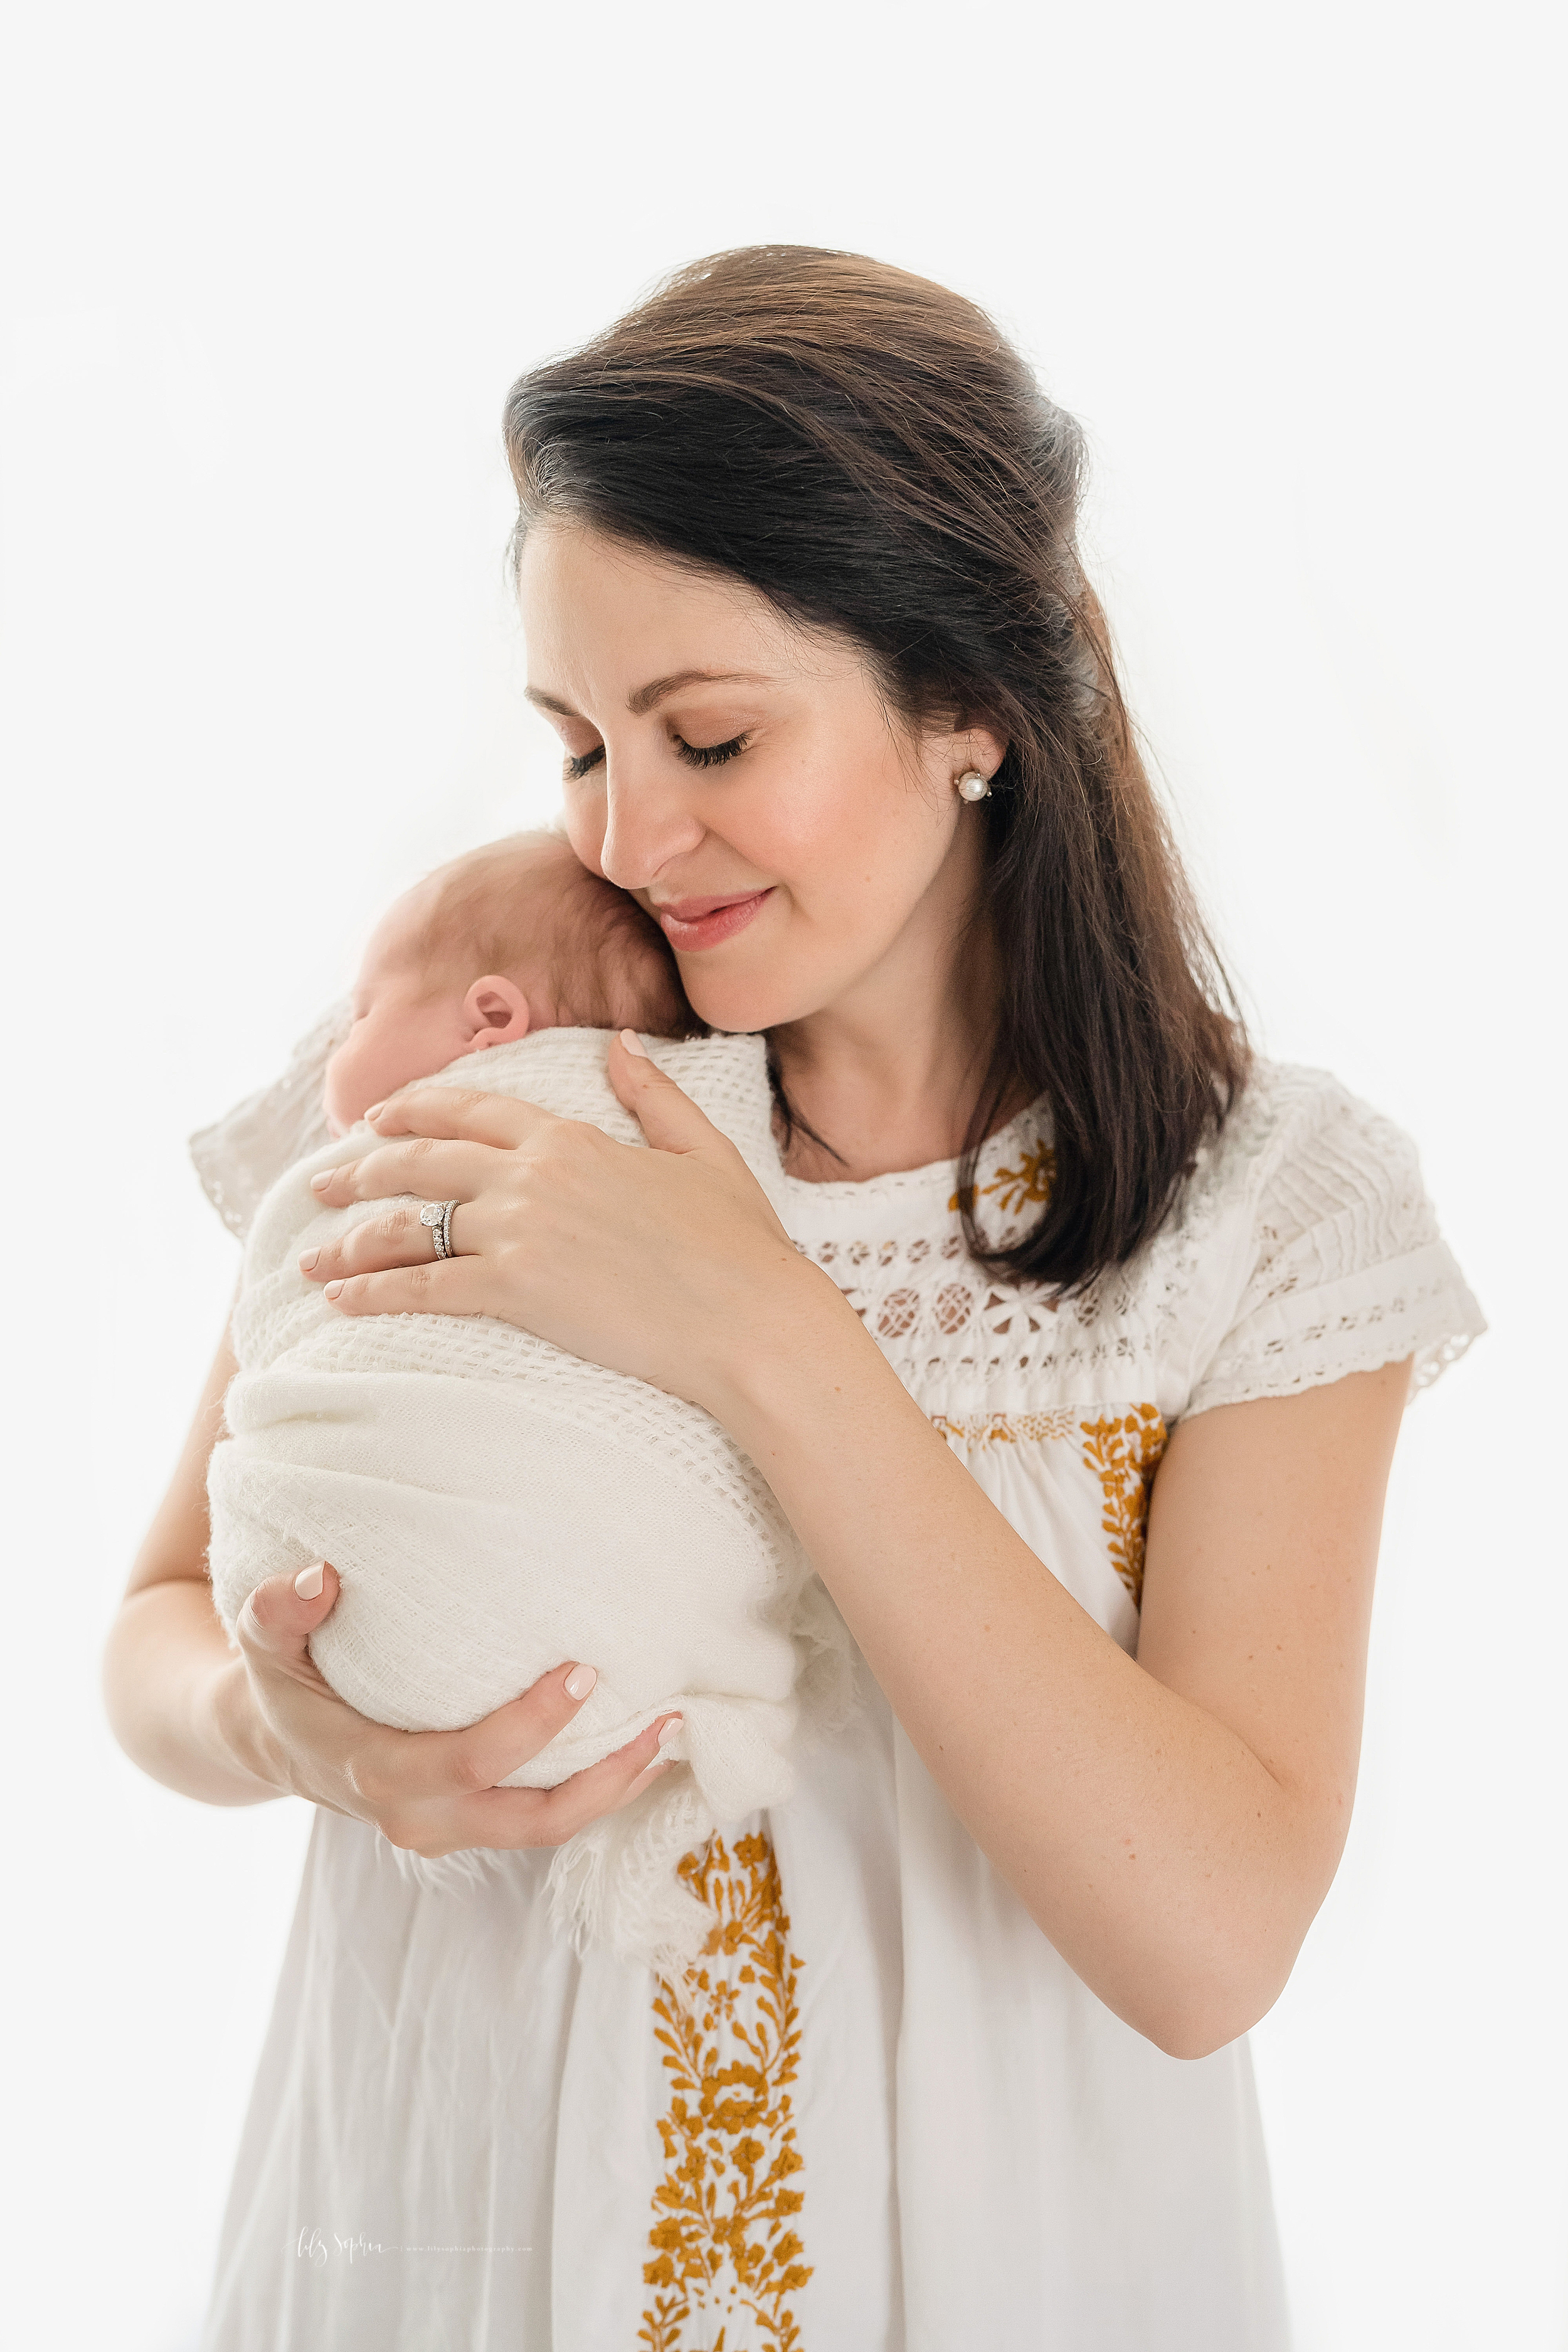 Photo of a contented mom and her sleeping newborn baby girl in natural light in an Atlanta studio.